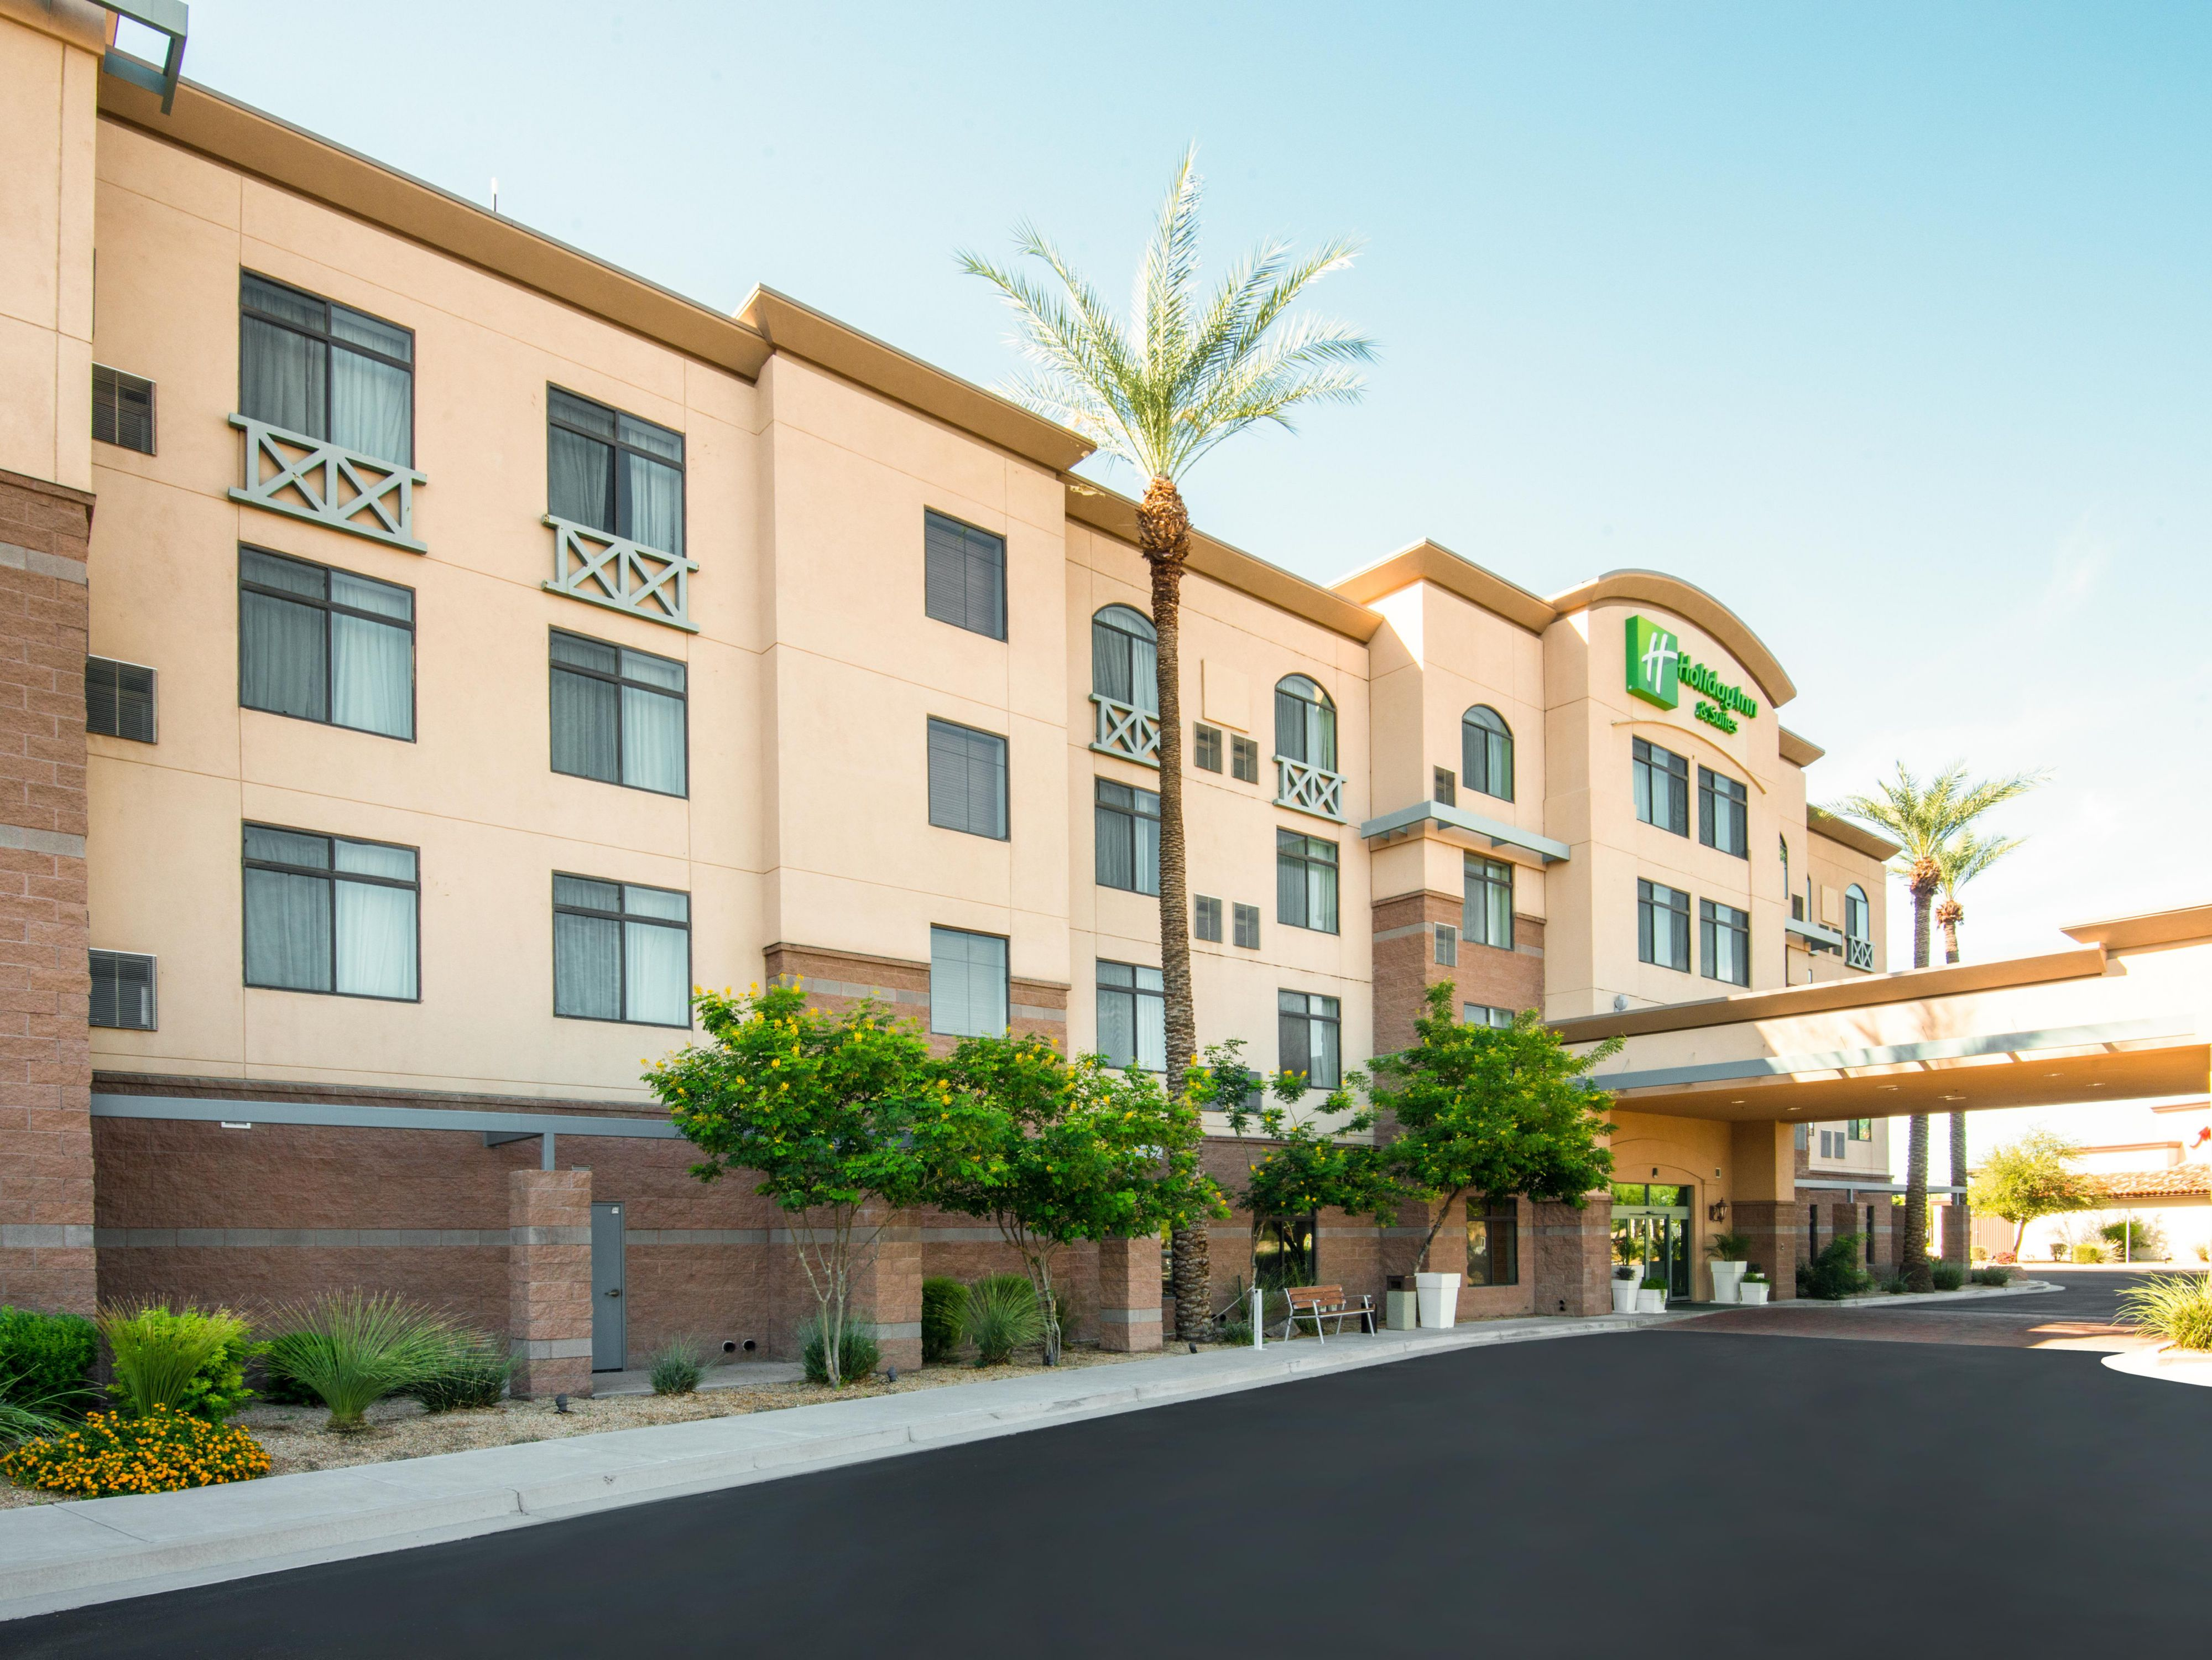 Welcome to the Holiday Inn & Suites West Phoenix Area!